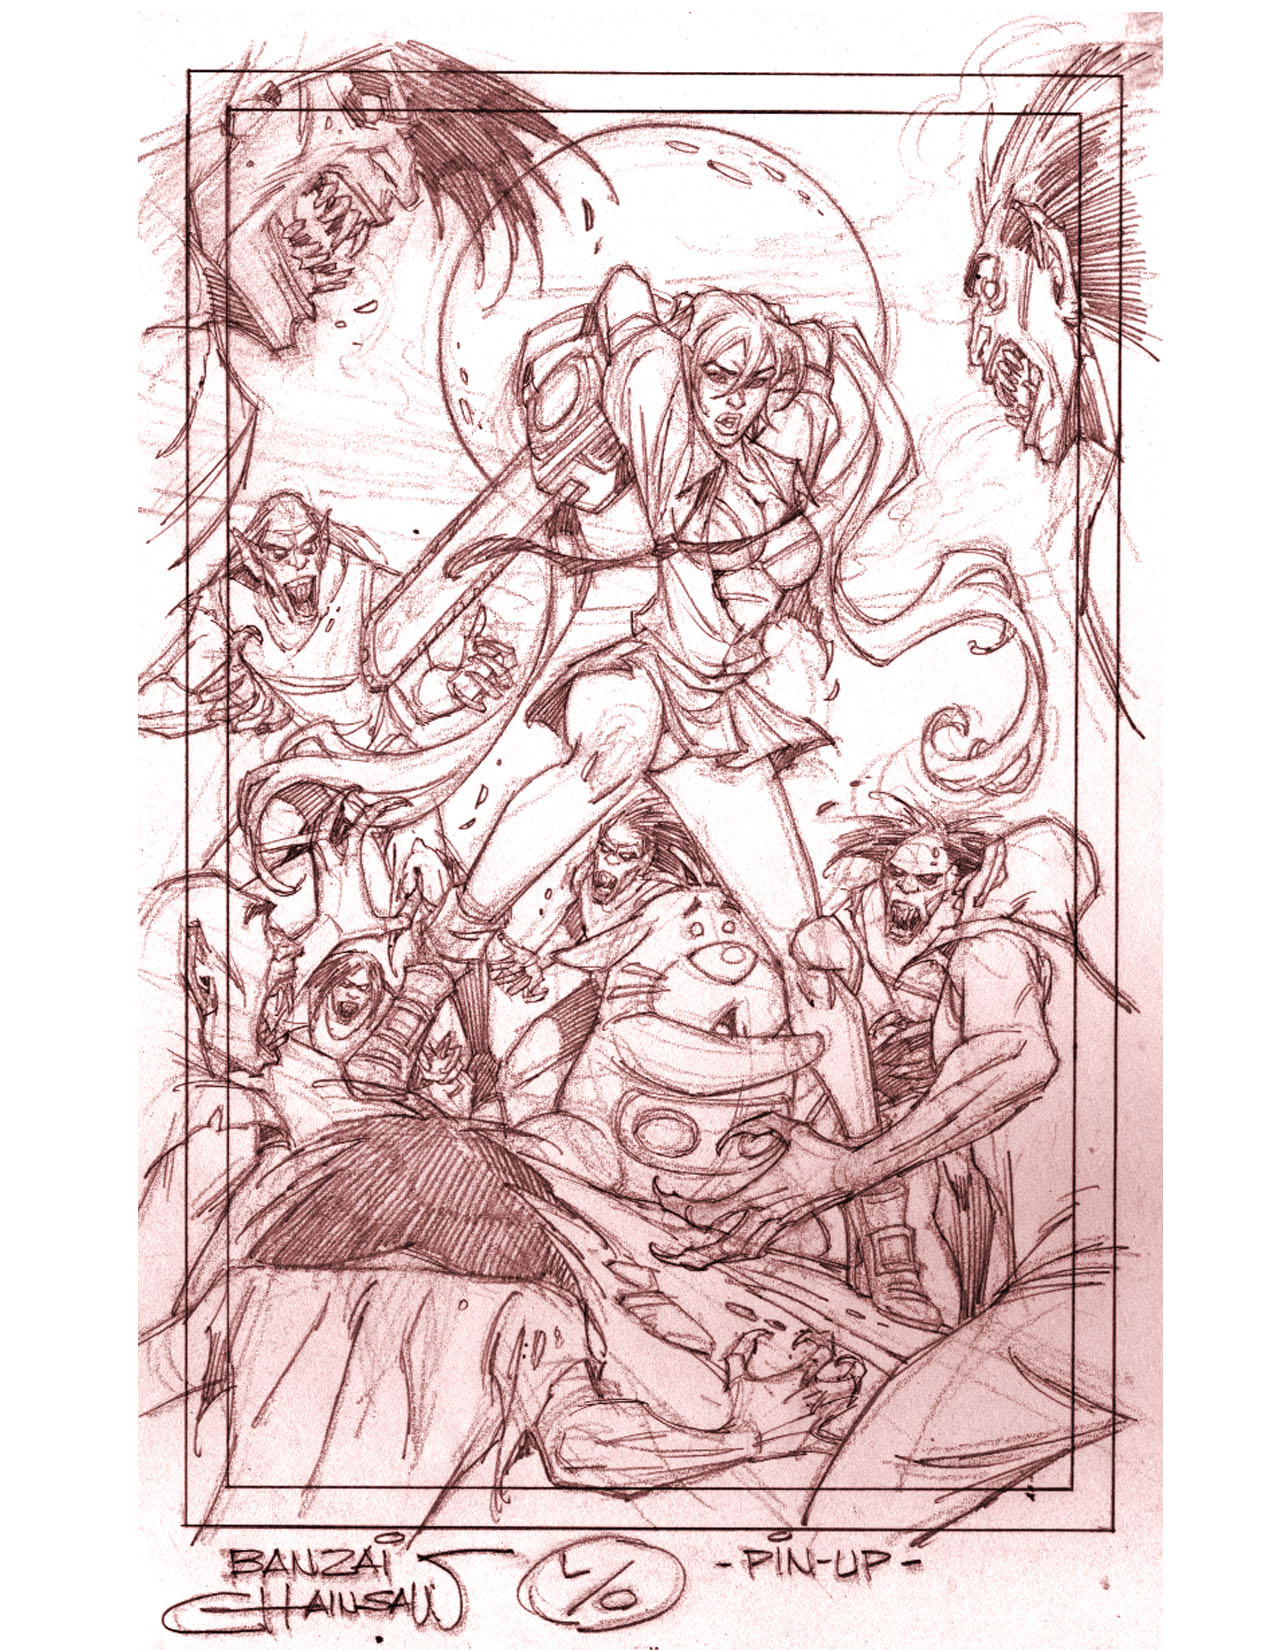 BANZAI GIRL: CHAINSAW CHALLENGE! Pencils